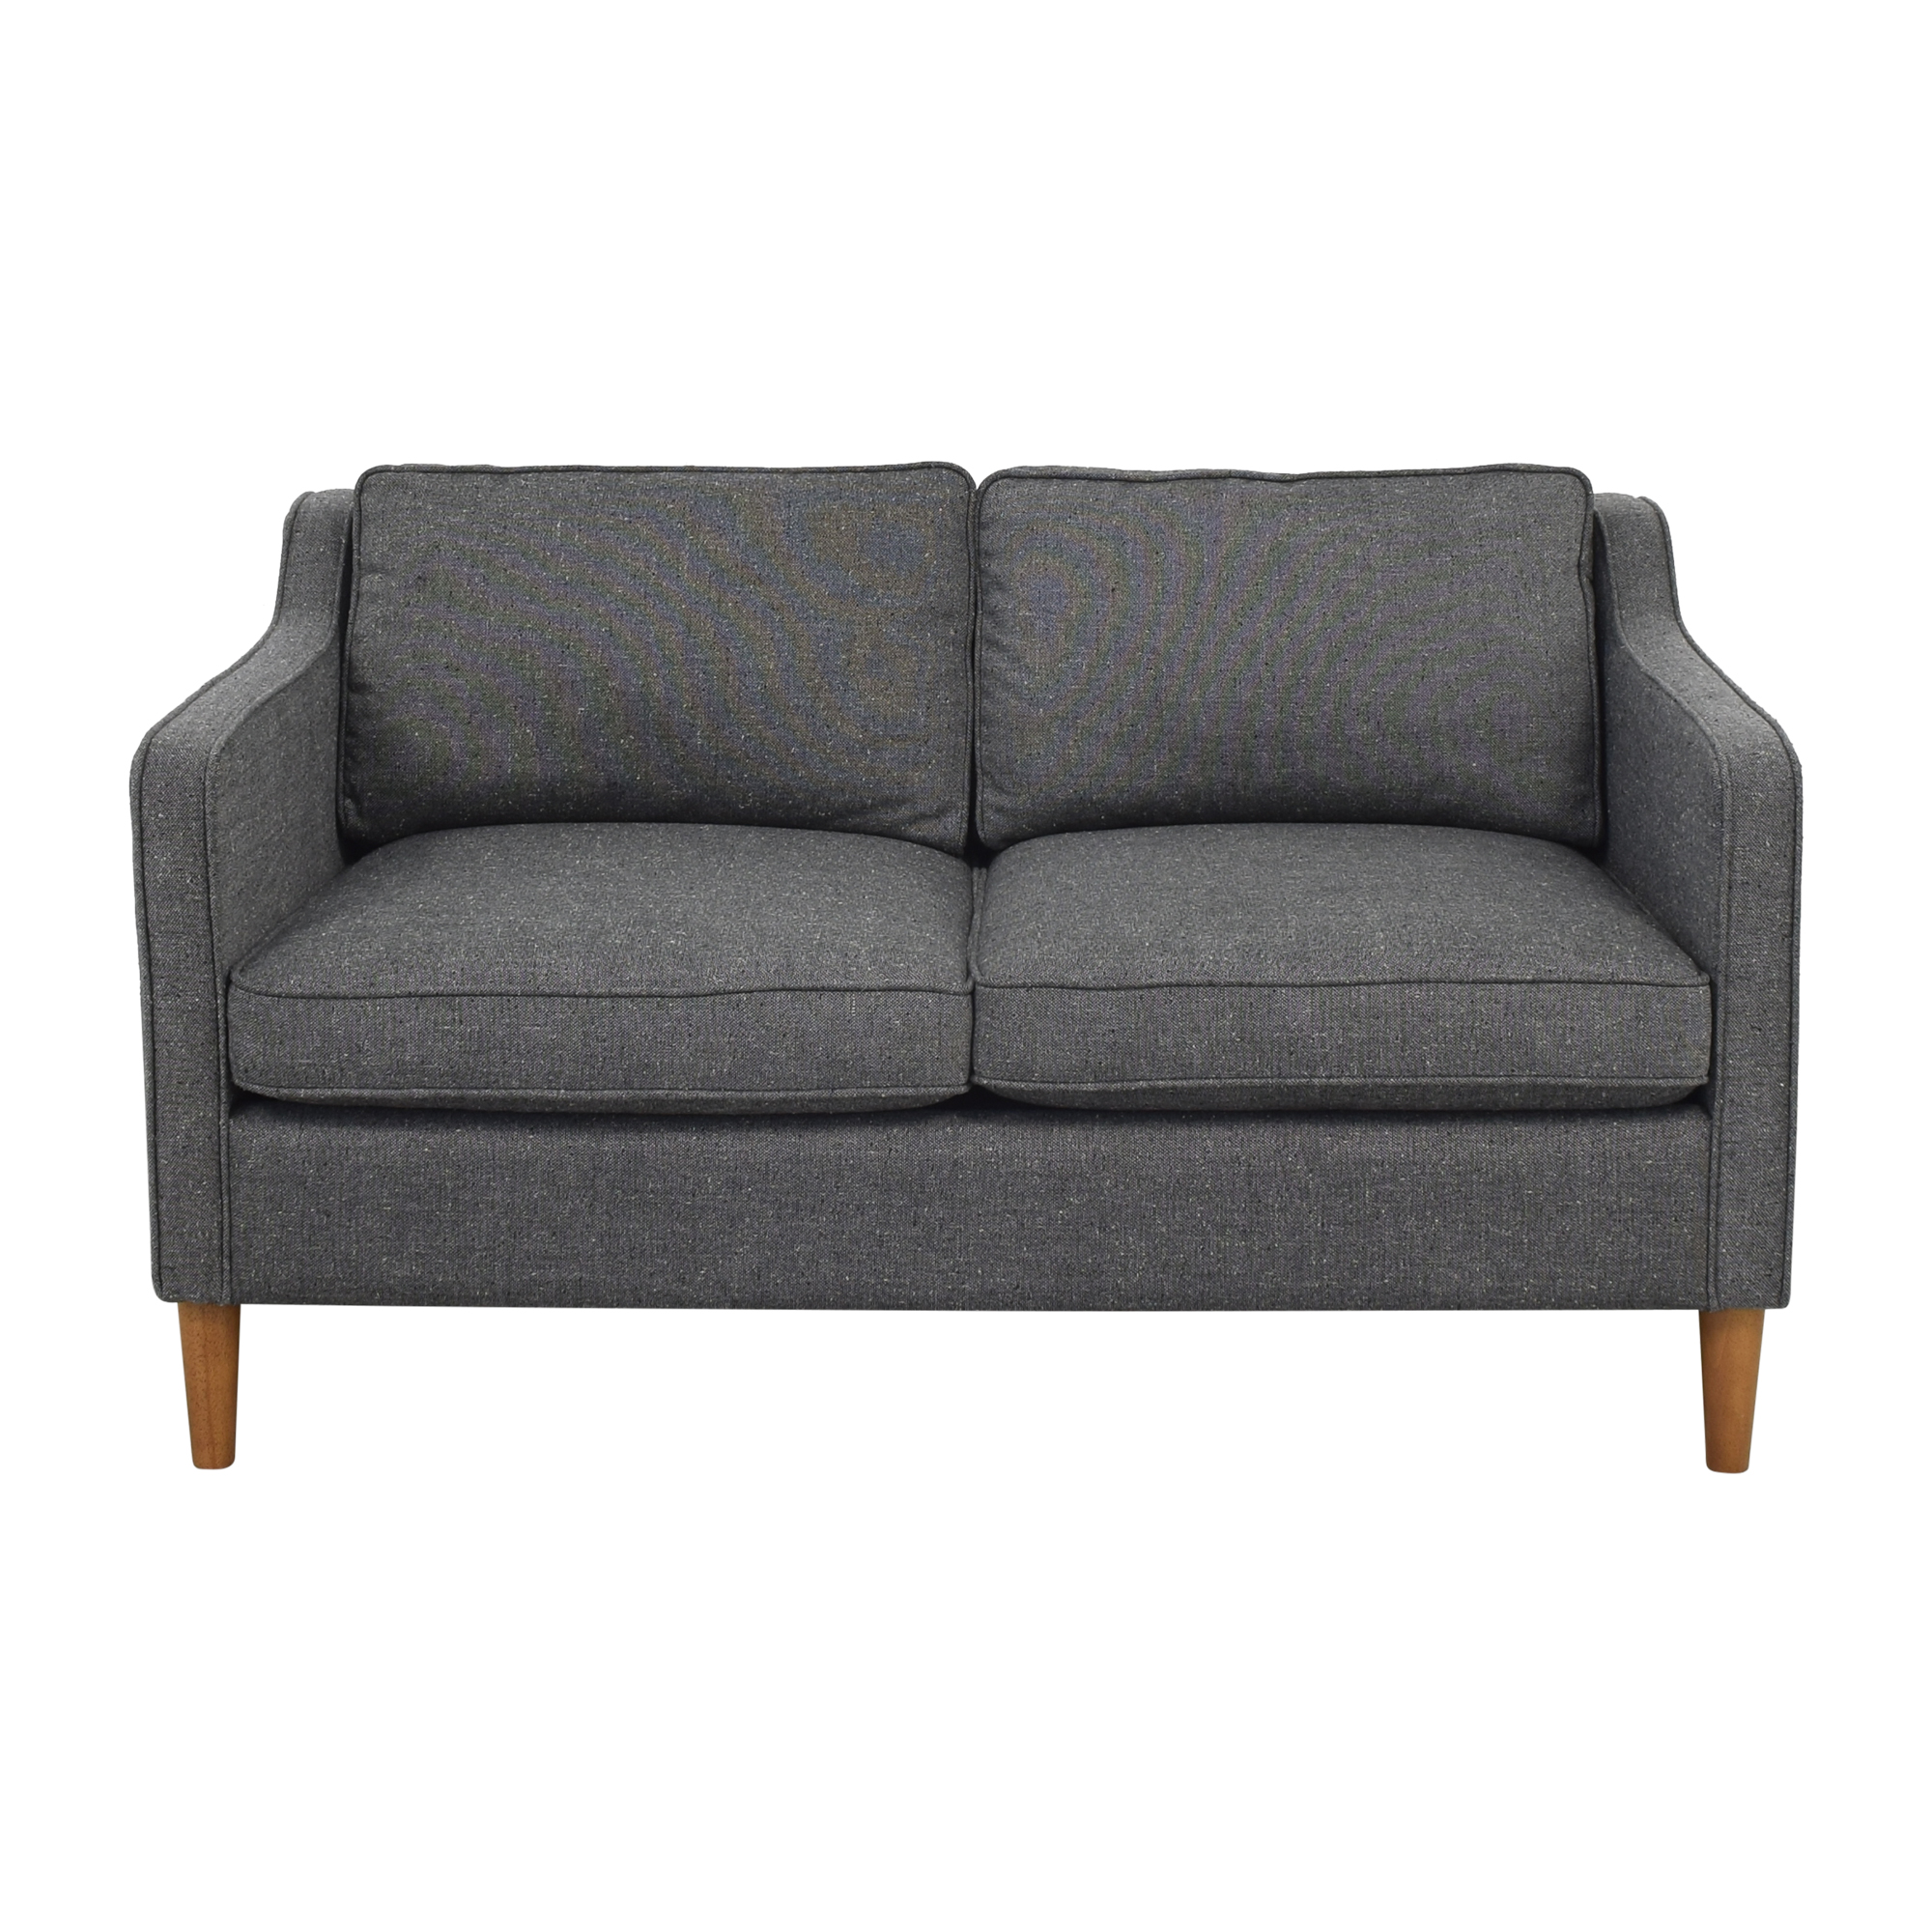 buy West Elm Hamilton Loveseat West Elm Sofas